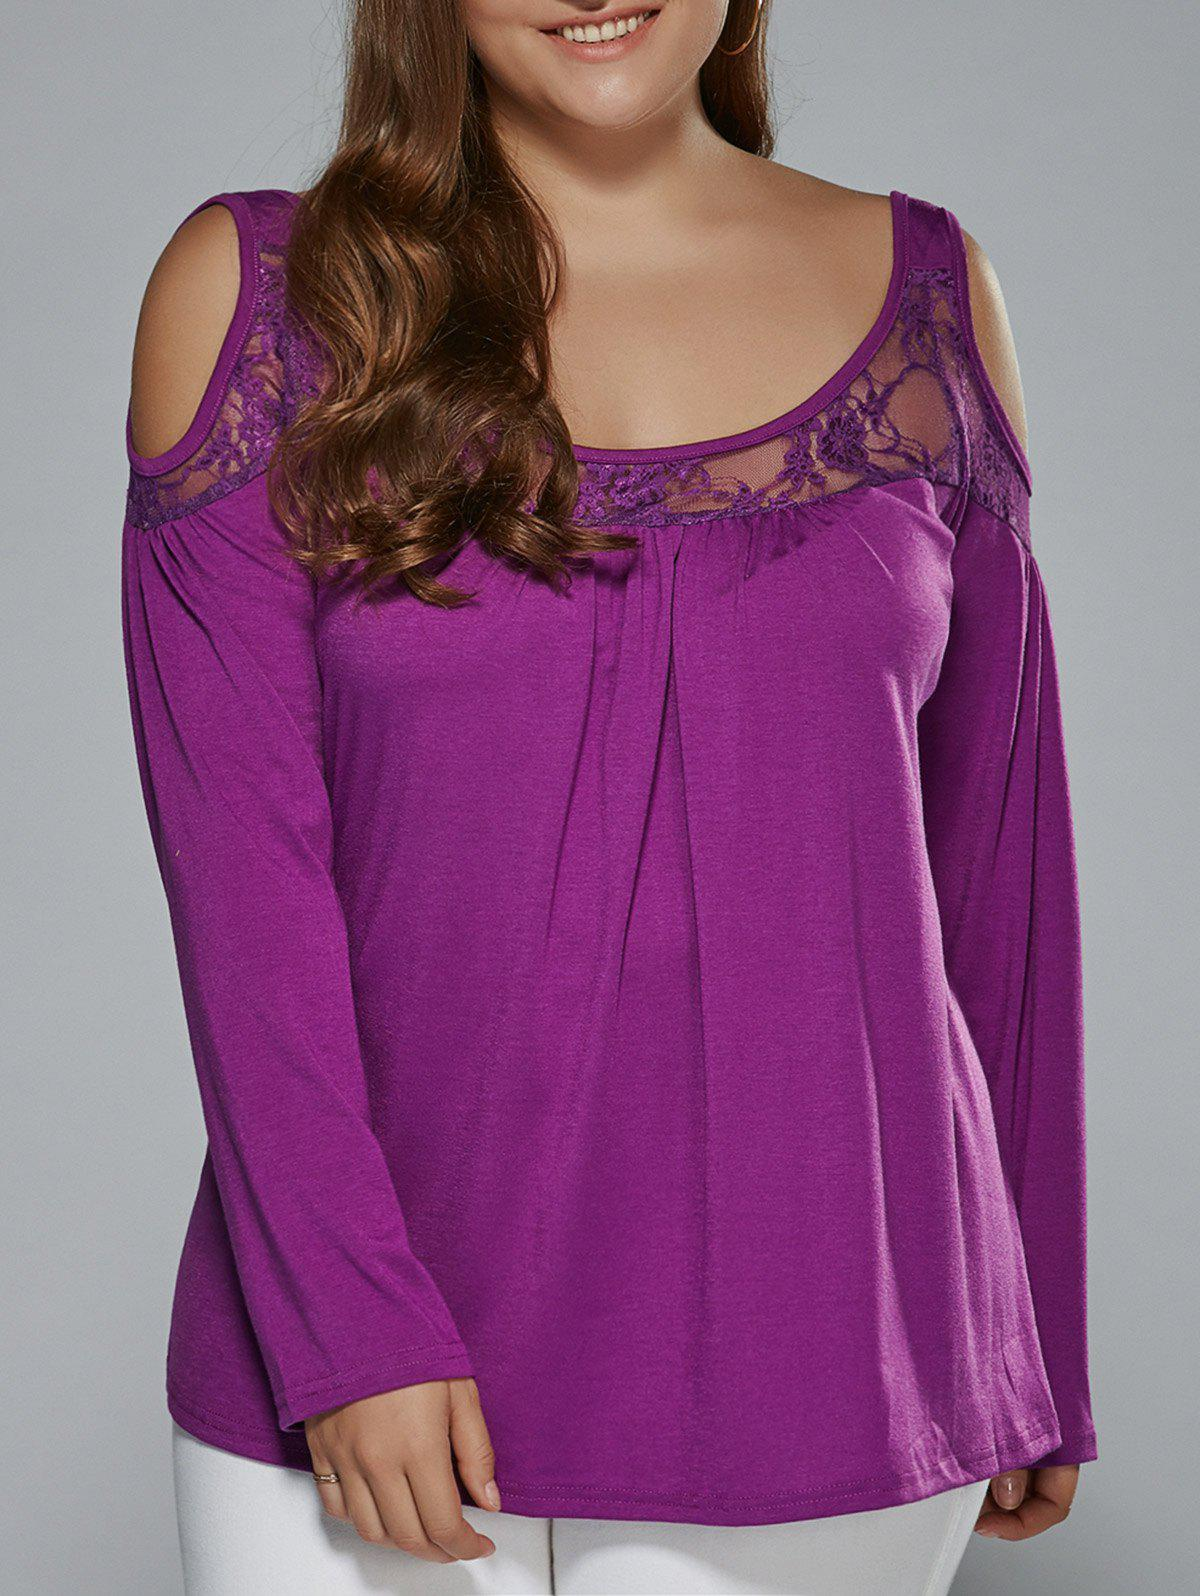 Long Sleeve Lace Patchwork Cold Shoulder T-ShirtWOMEN<br><br>Size: 3XL; Color: PURPLE; Material: Polyester; Shirt Length: Regular; Sleeve Length: Full; Collar: Scoop Neck; Style: Fashion; Season: Fall,Spring; Pattern Type: Patchwork; Weight: 0.239kg; Package Contents: 1 x T-Shirt;